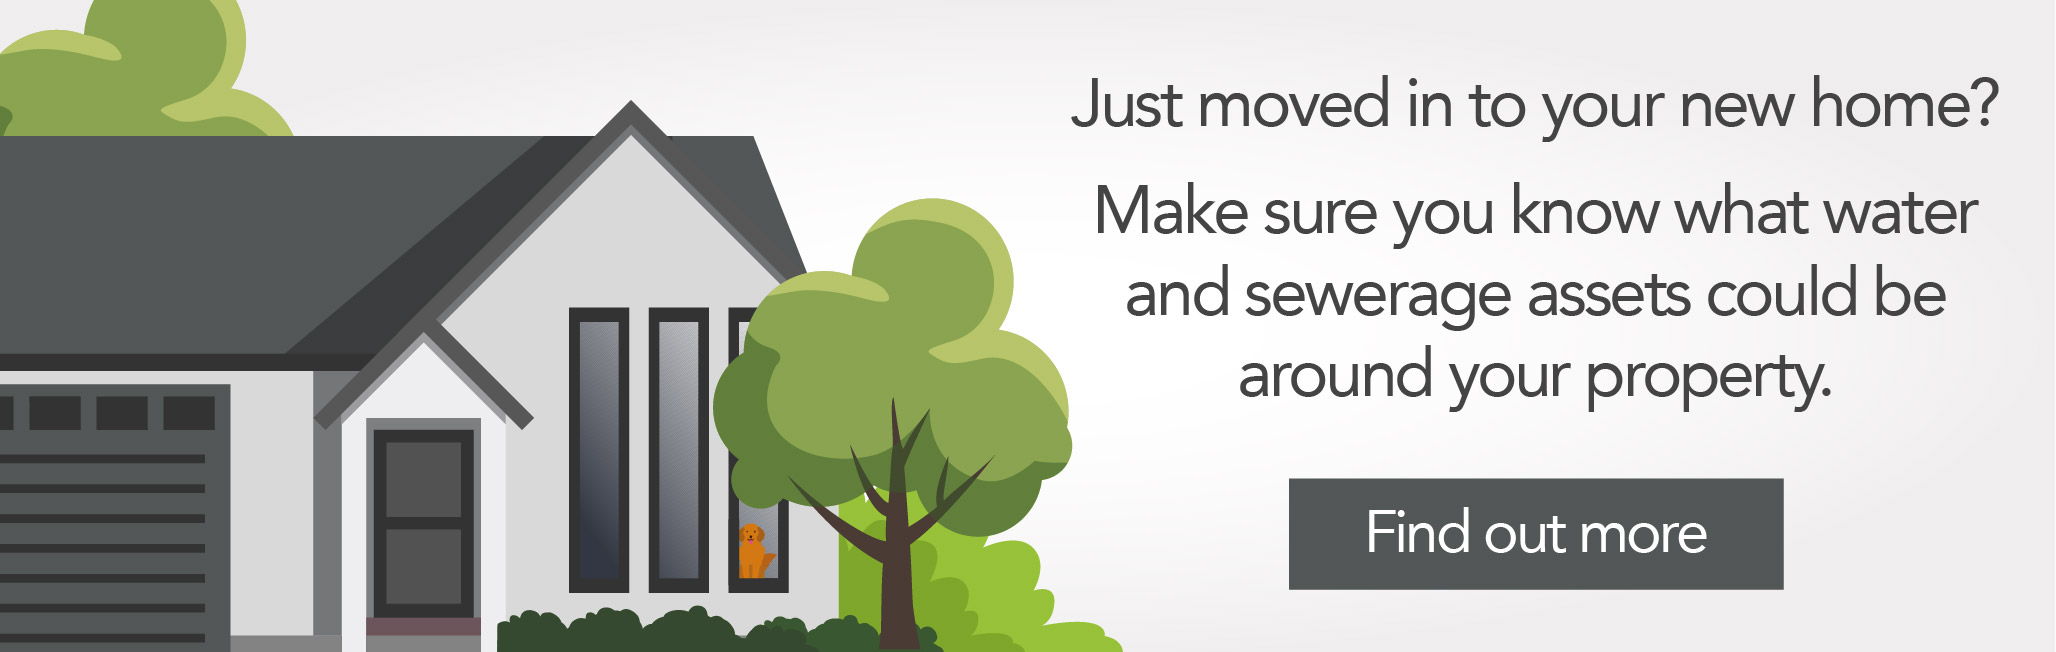 Just move in to your new home? Make sure you know what water and sewerage assets could be around your property. Find out more.